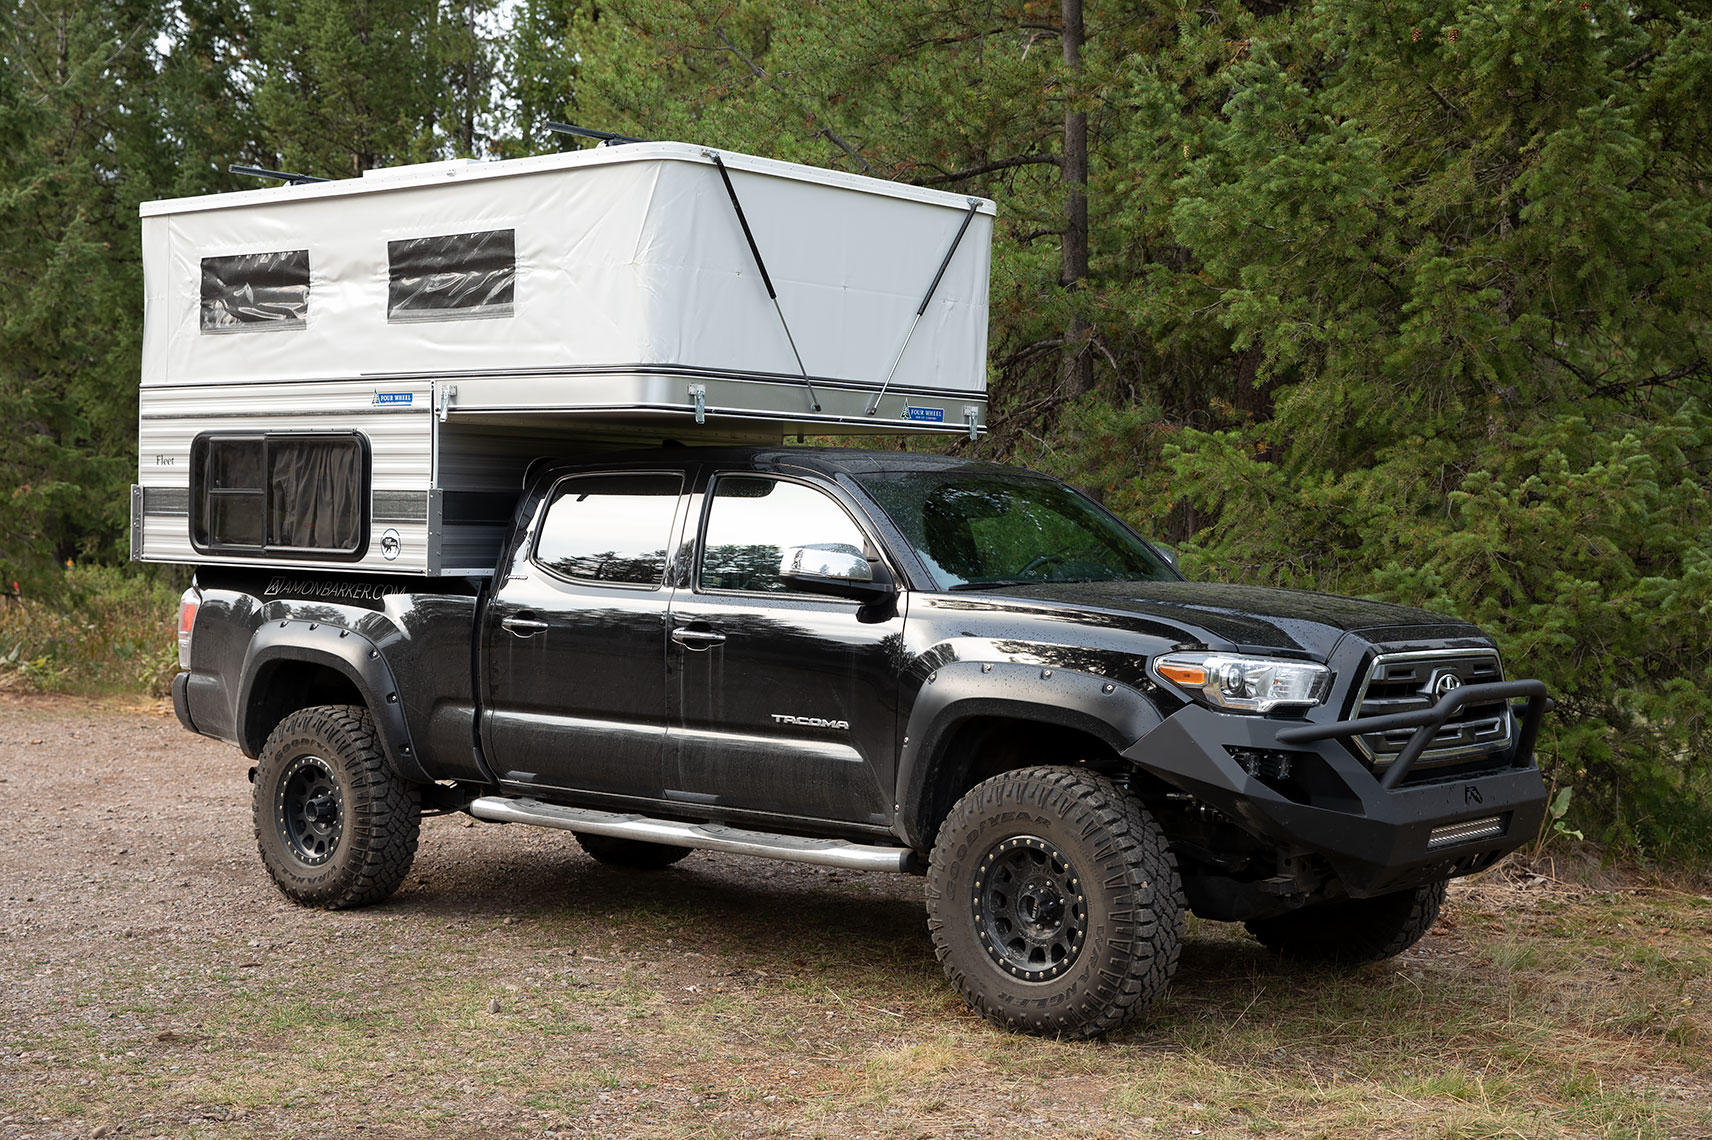 Once popped up there is plenty or room to stand in the camper. Four Wheel Campers Fleet 2016